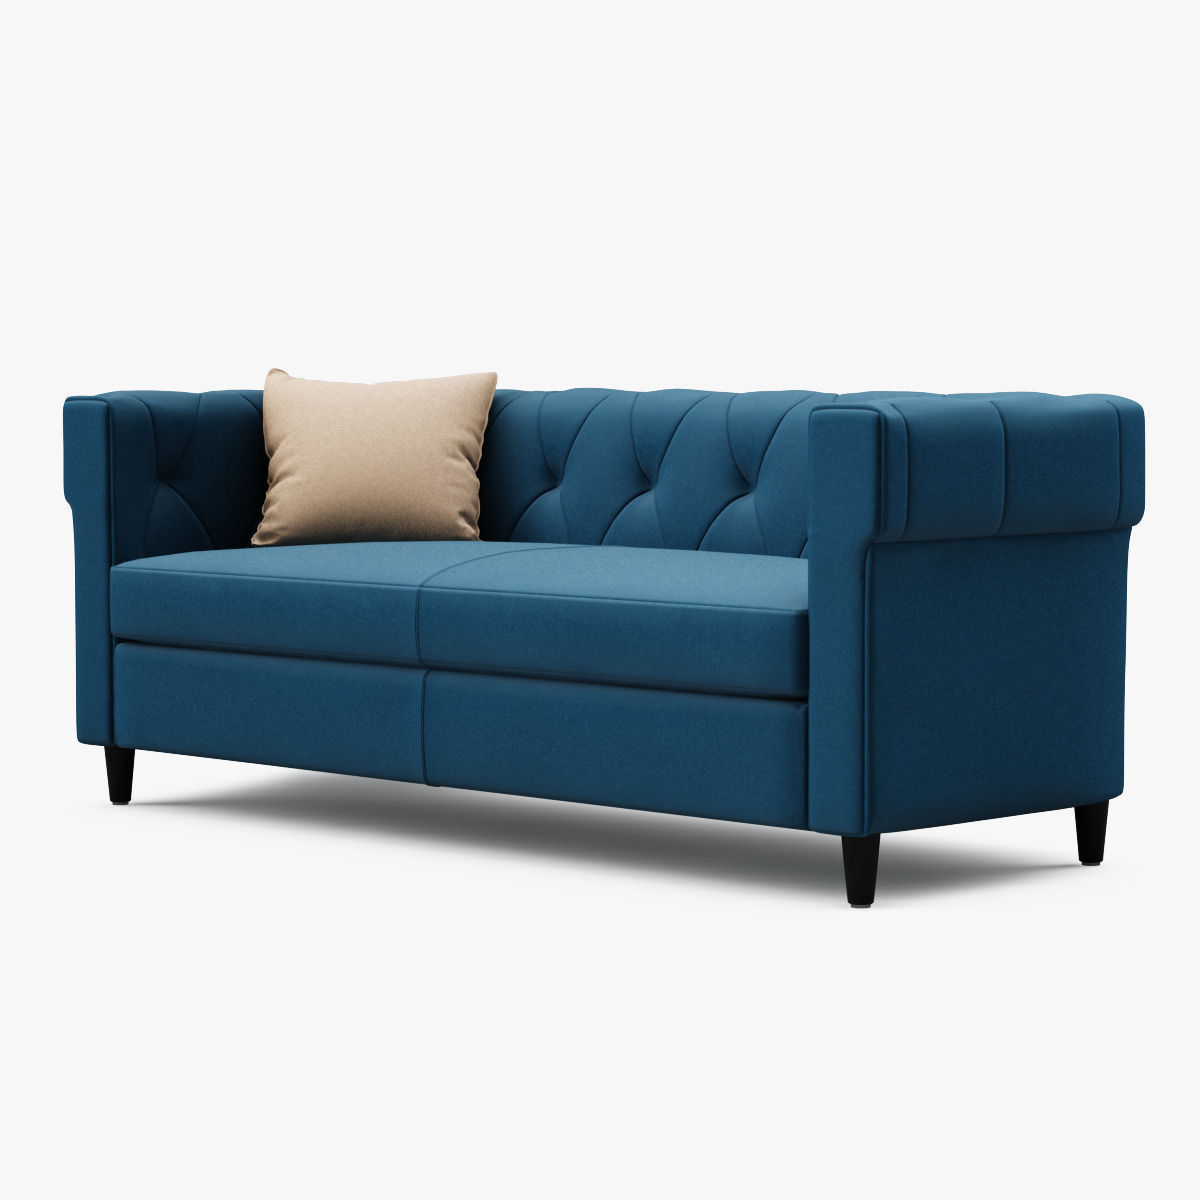 Sofas Chester Simple Kirby Sofa With Sofas Chester Affordable  # Muebles Marieta